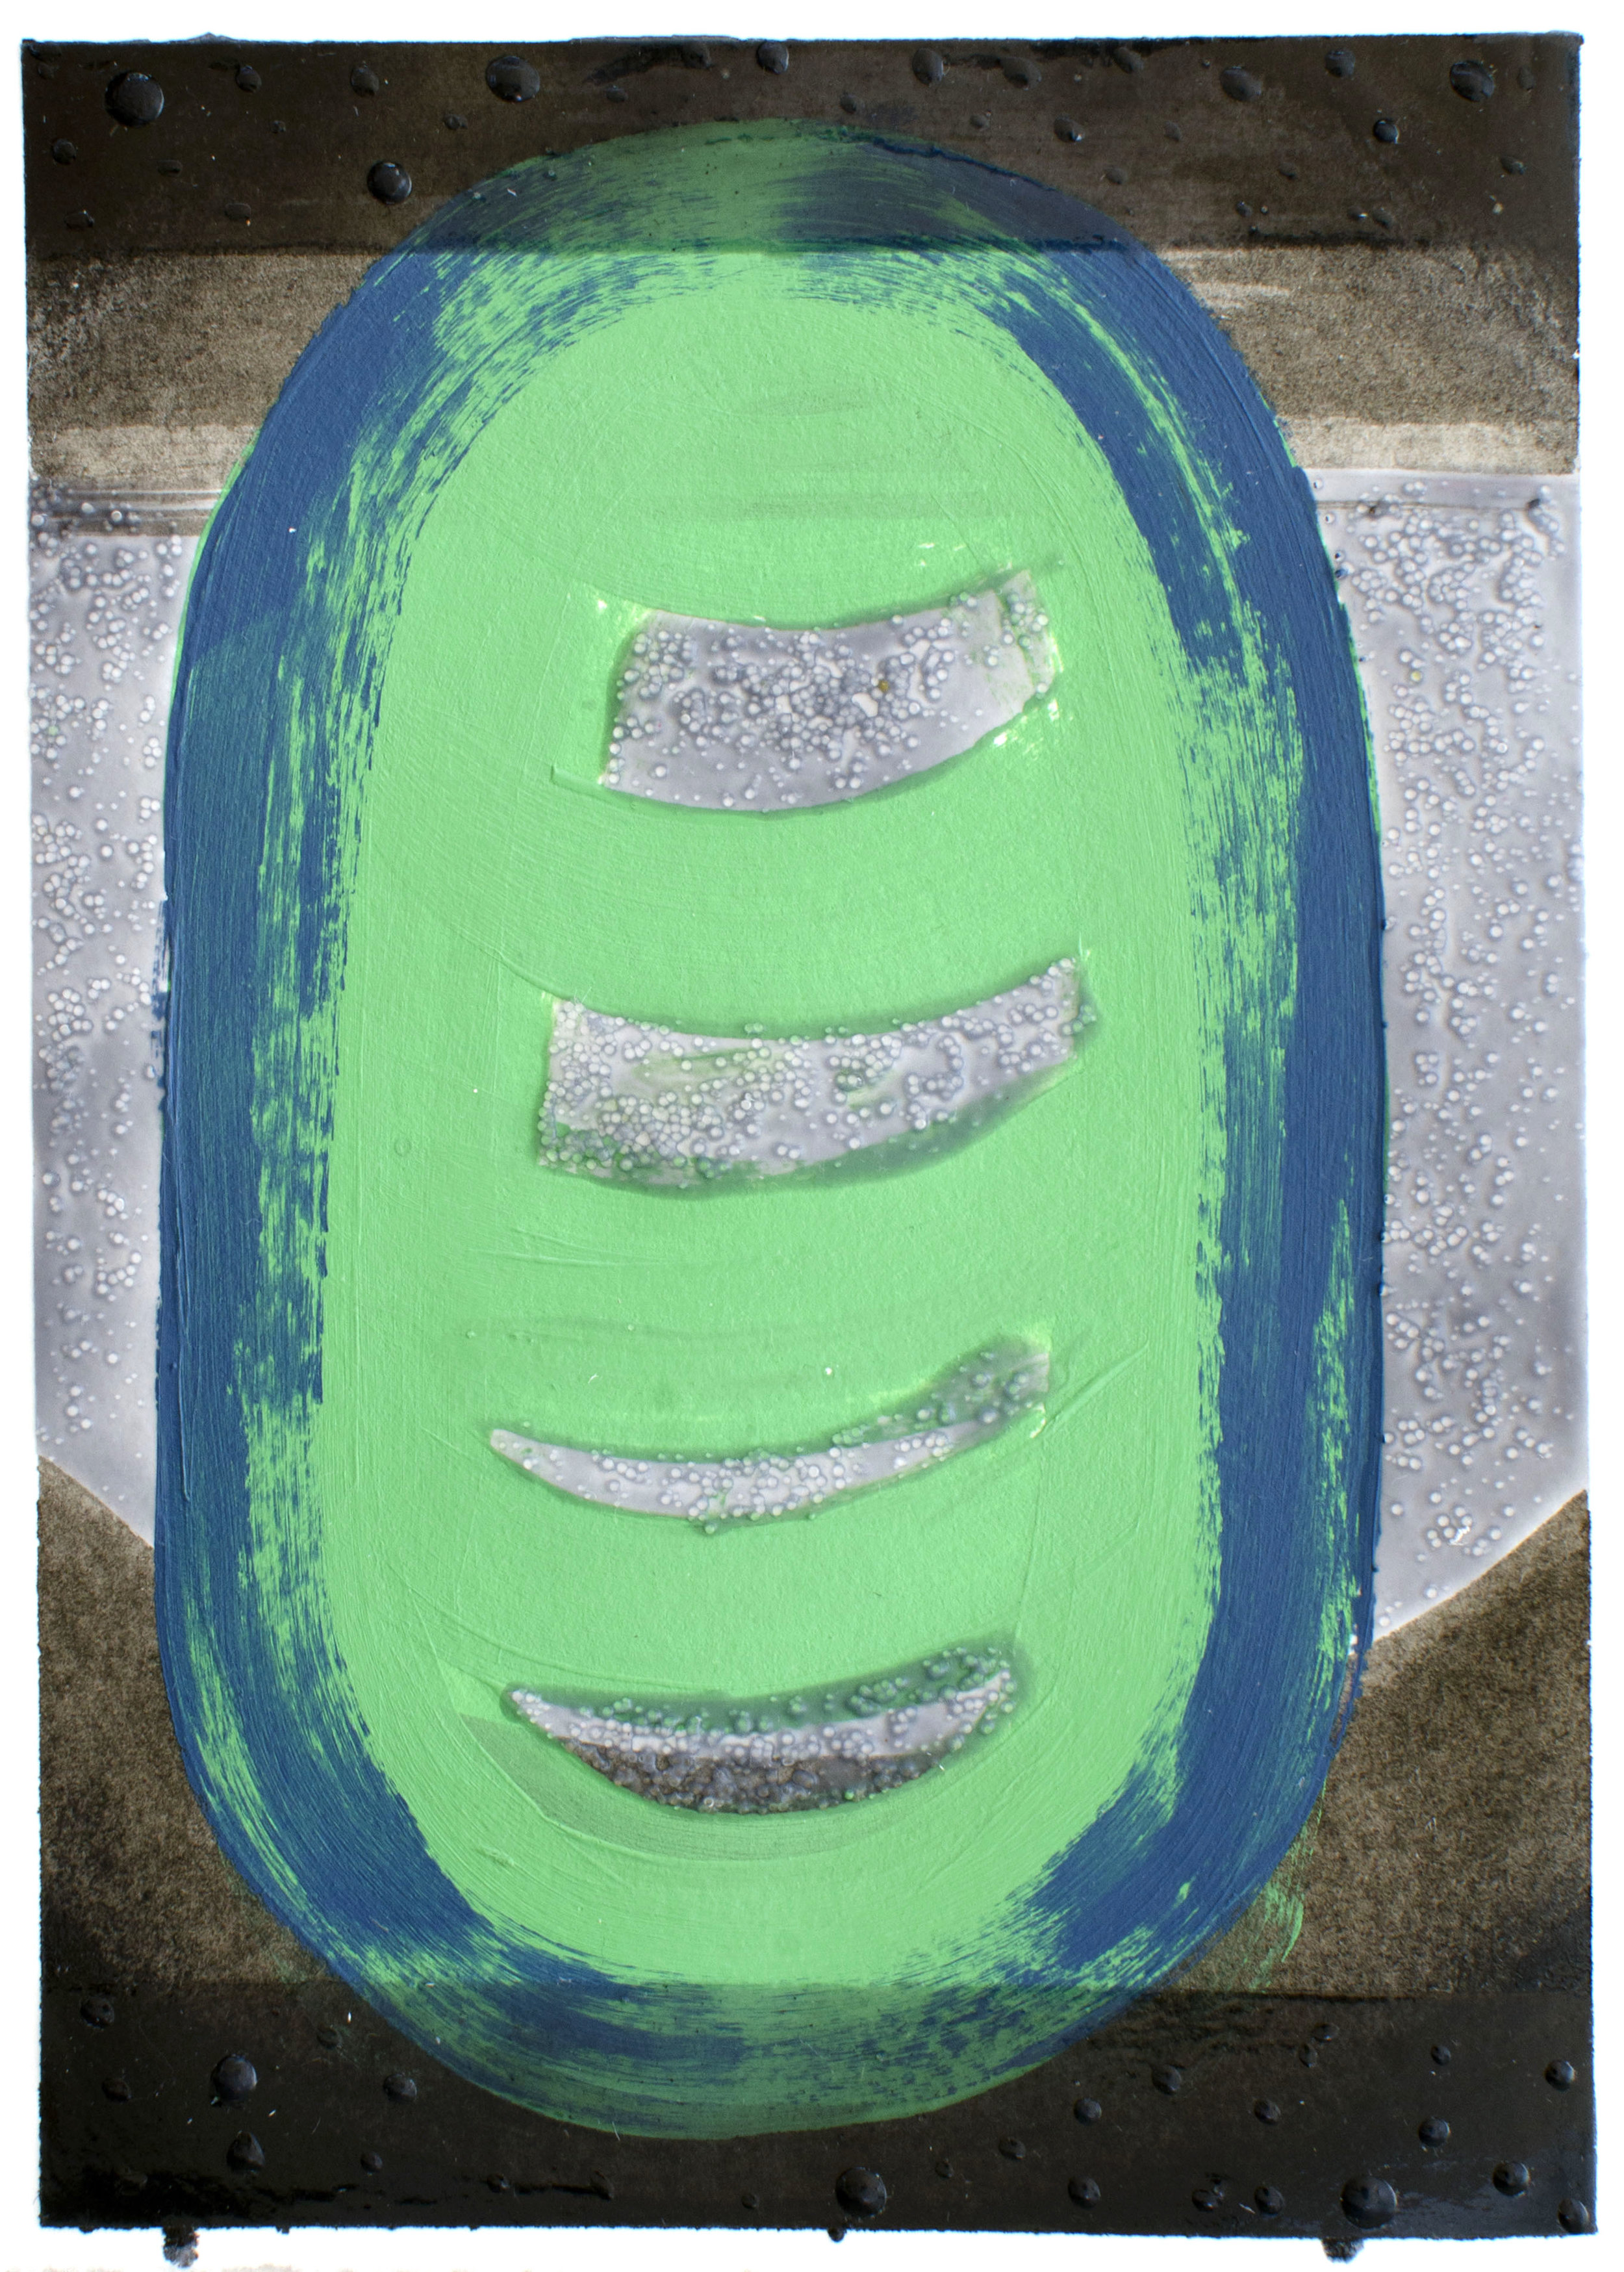 "Float - Elise Thompson7"" x 5"" watercolor, acrylic, and glass beads on paper, framed$175"